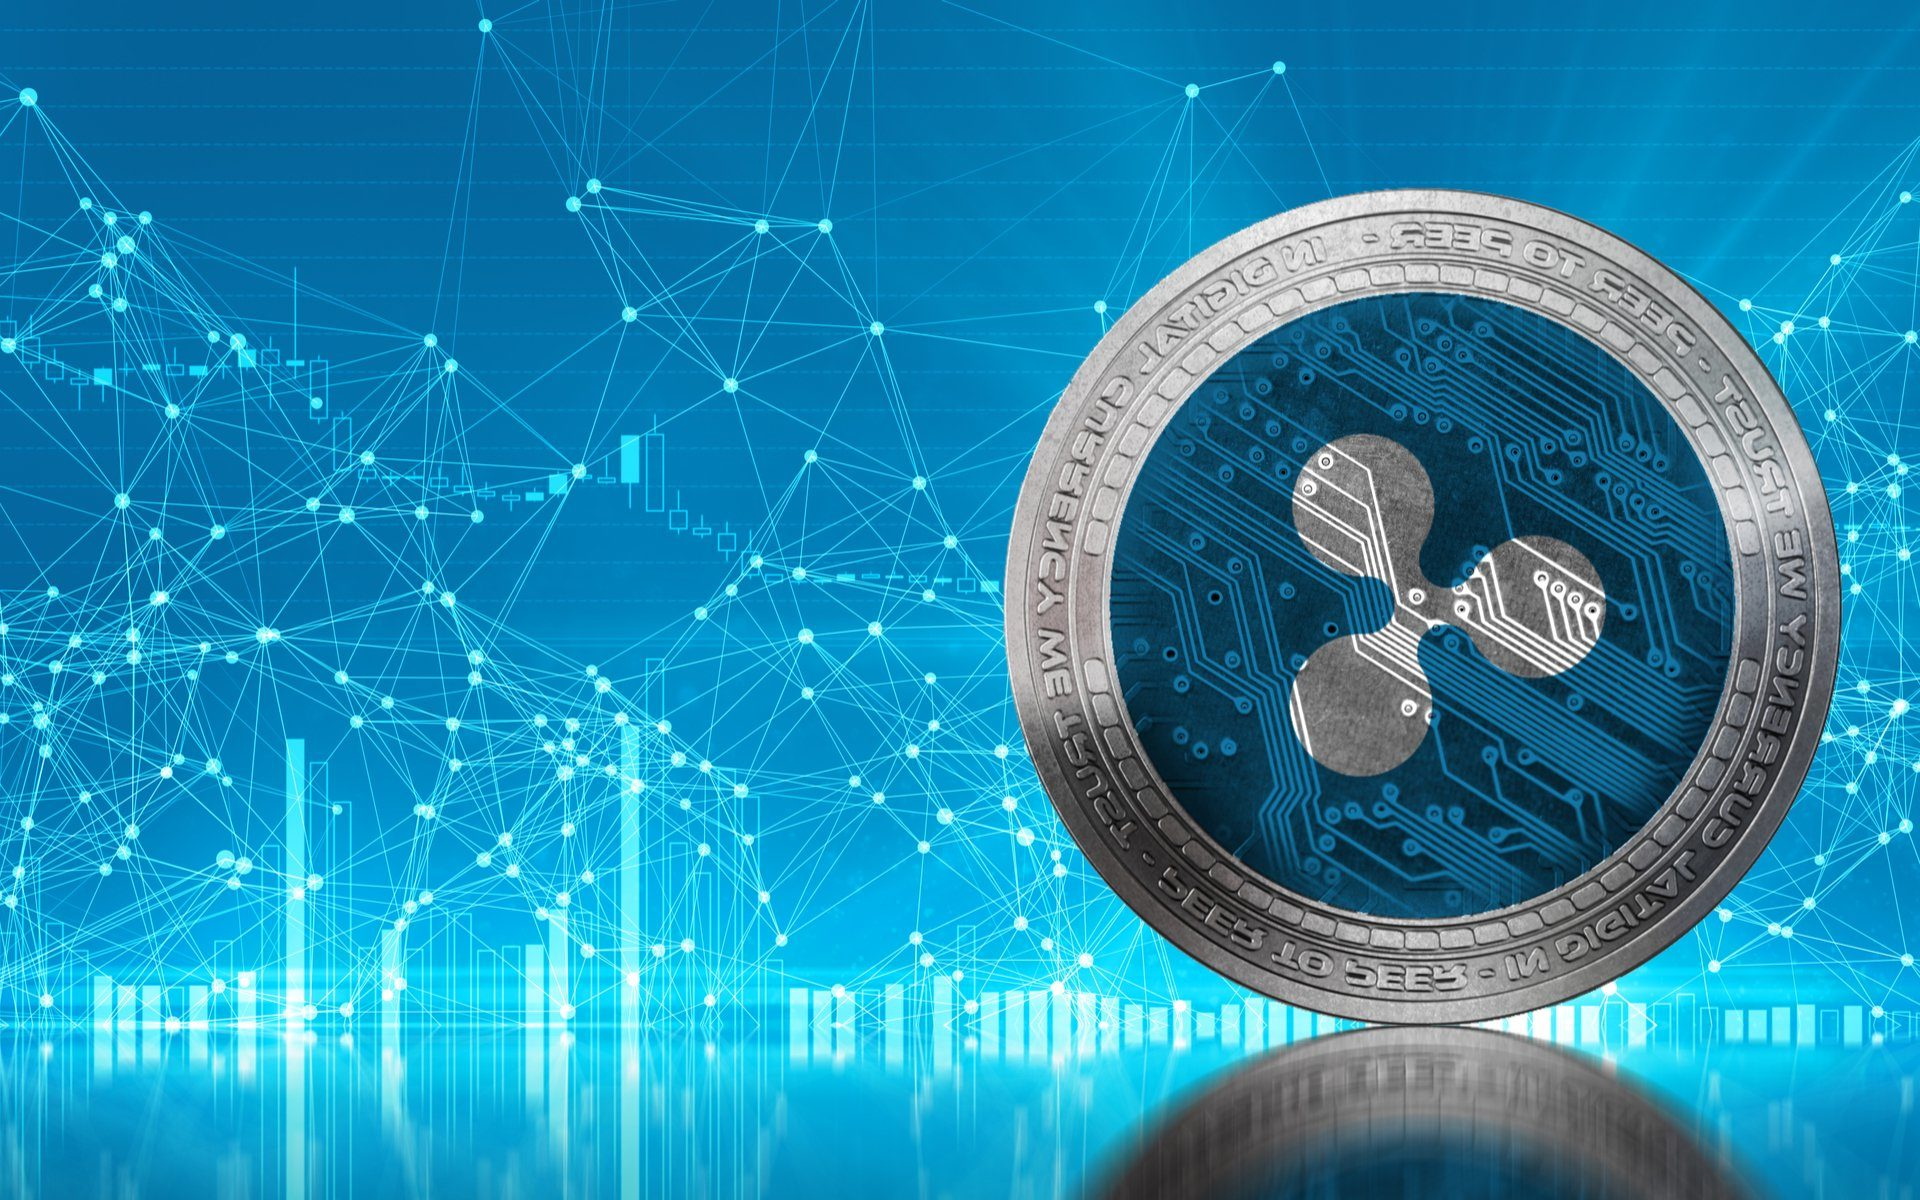 Ripple Expands Blockchain University Initiative With Partners in US, China & Singapore